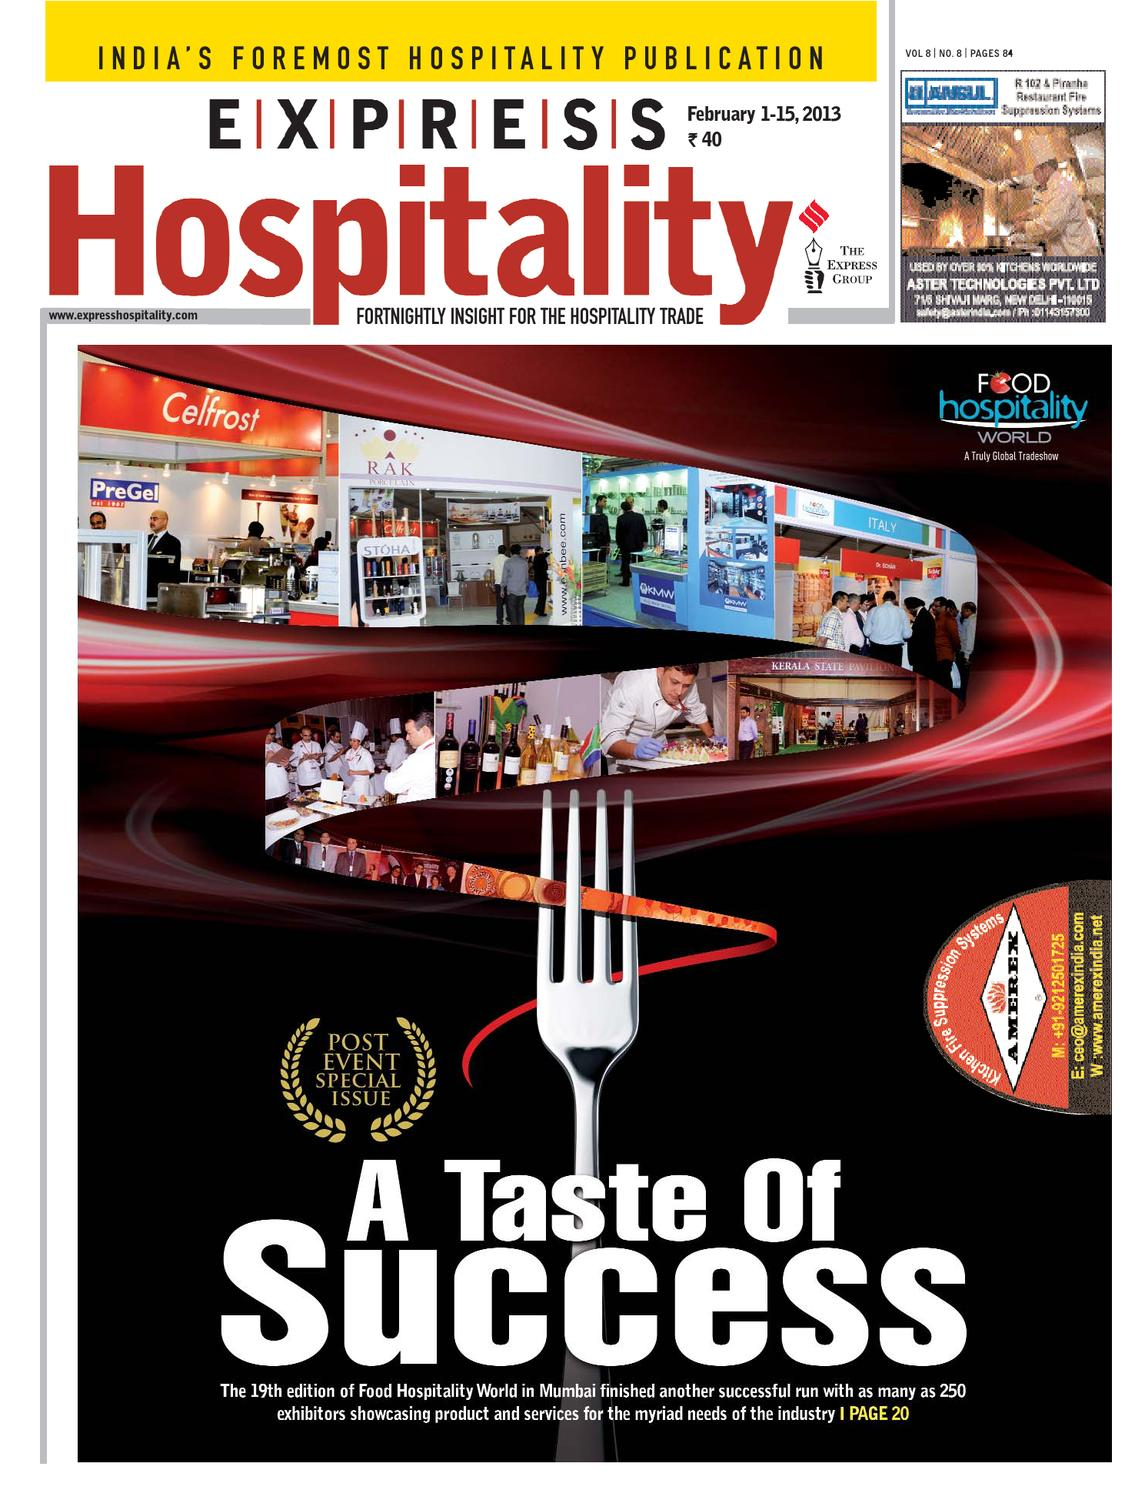 ISSUU - Express Hospitality February 1-15, 2013 by Indian Express